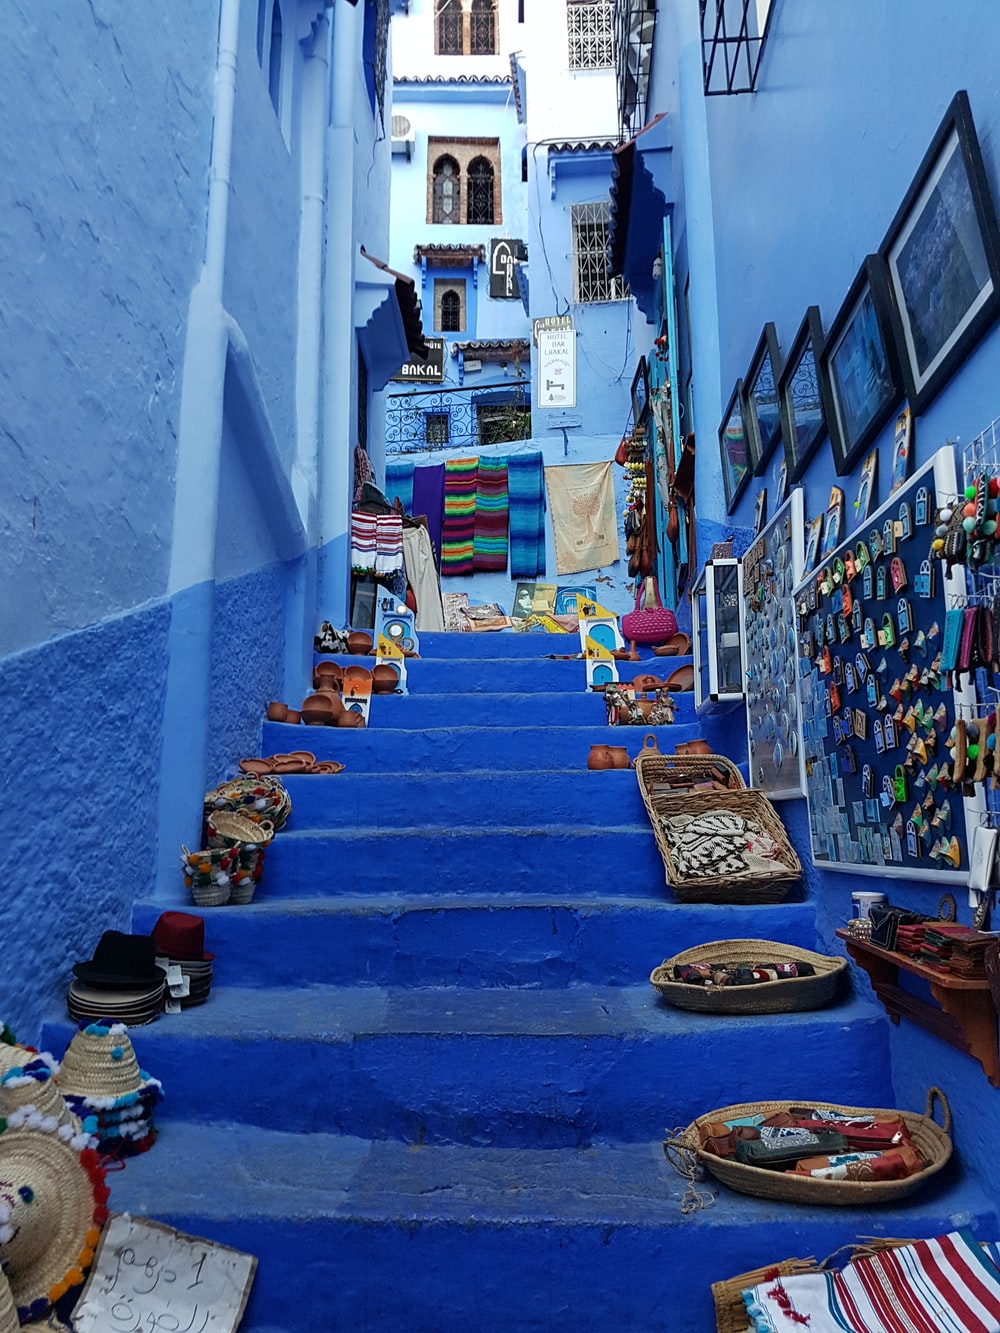 assorted baskets on stair (travel Morocco)